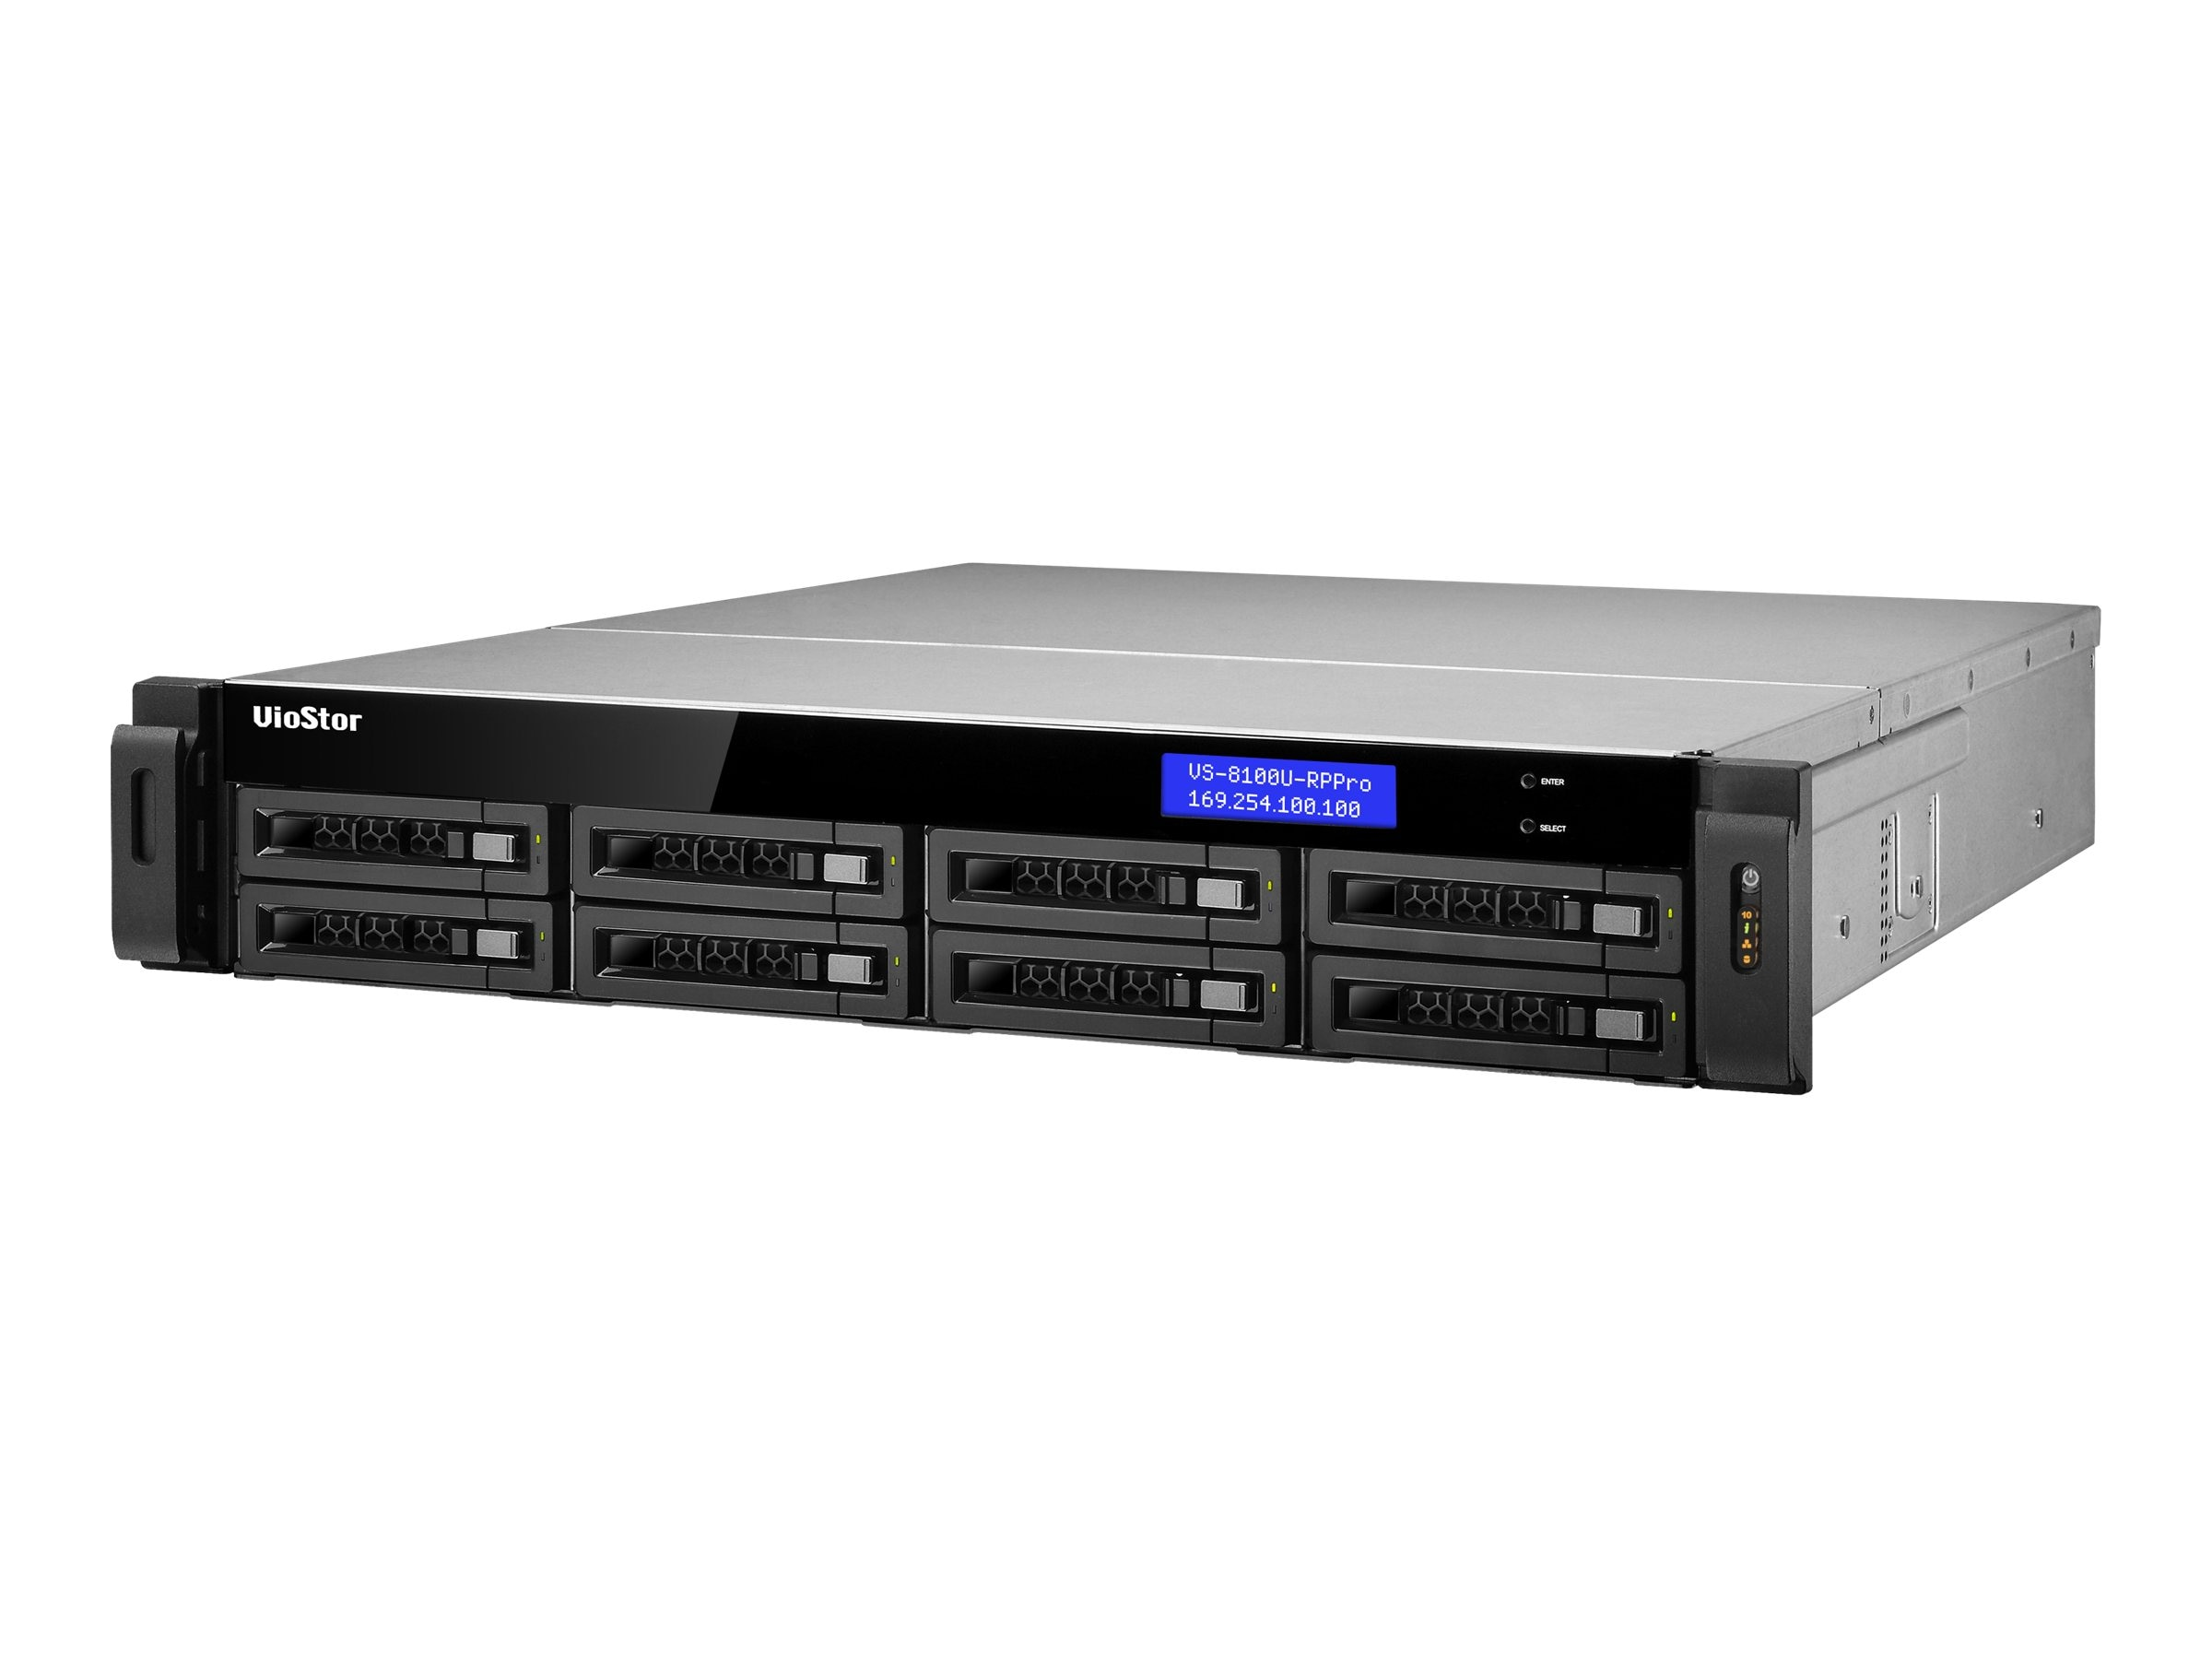 Qnap 8-Bay NVR 24-Channel Surveillance Appliance, VS-8124U-RP-PRO-US